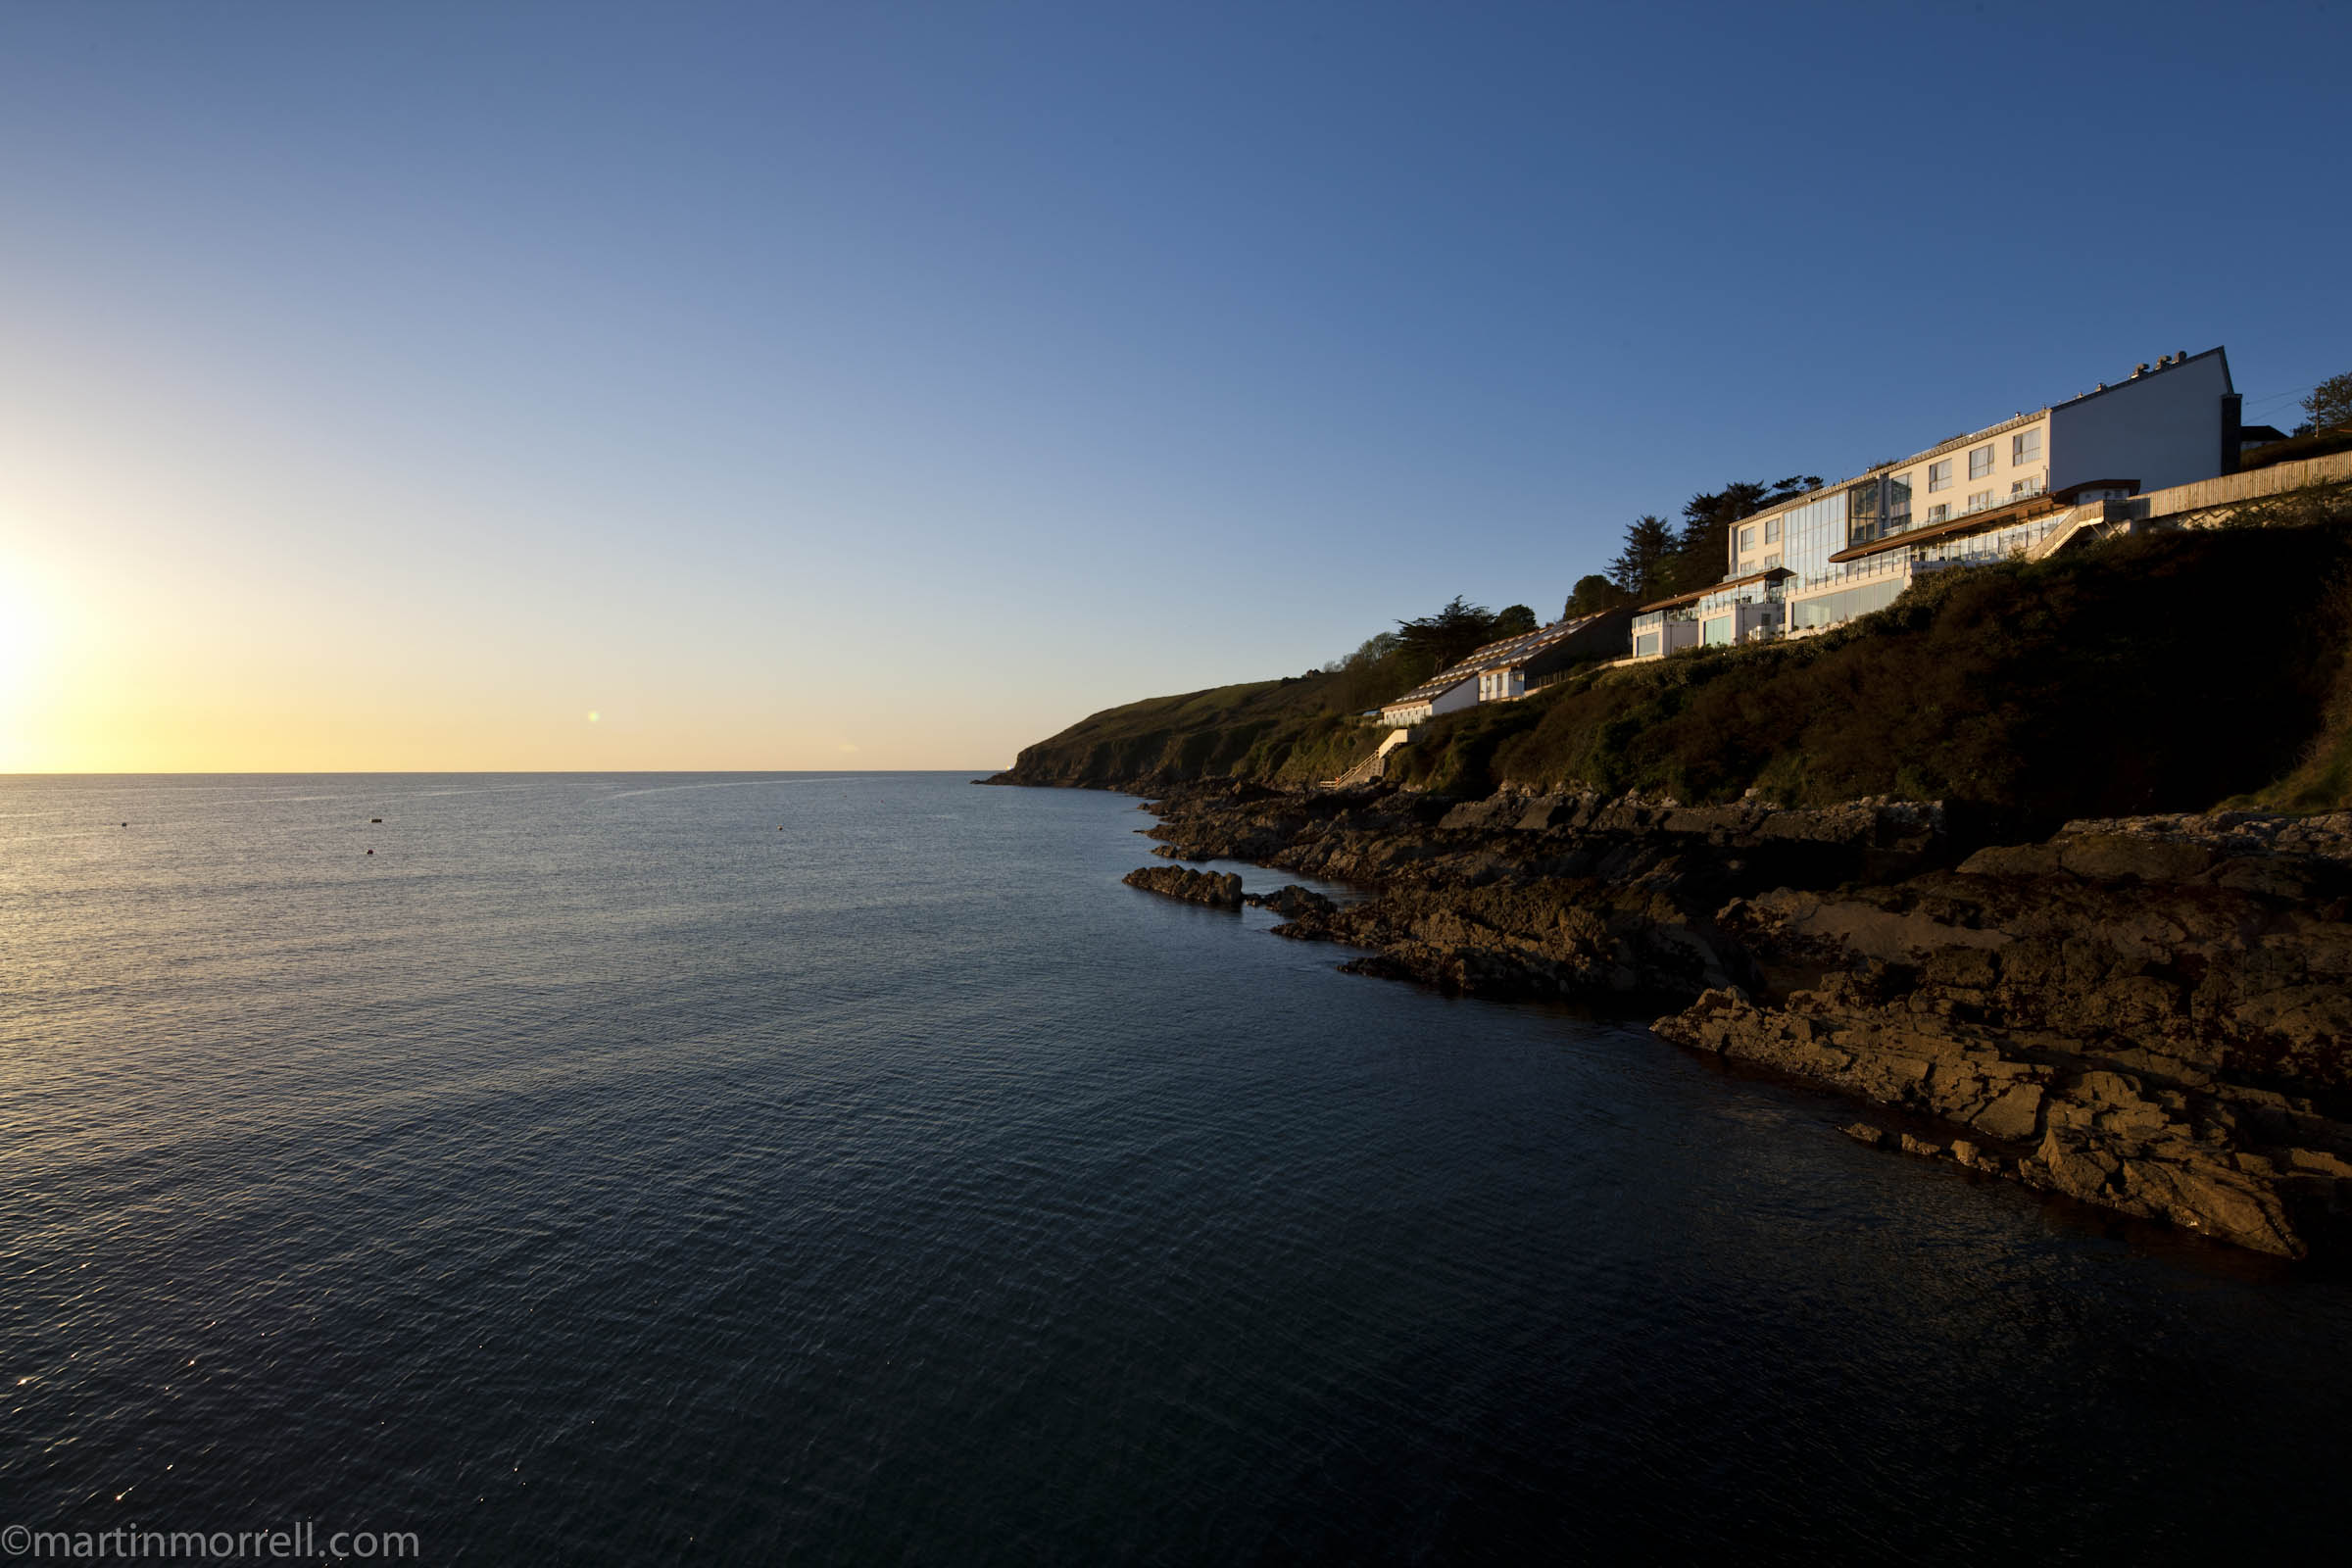 Image credit: The Cliff House Hotel